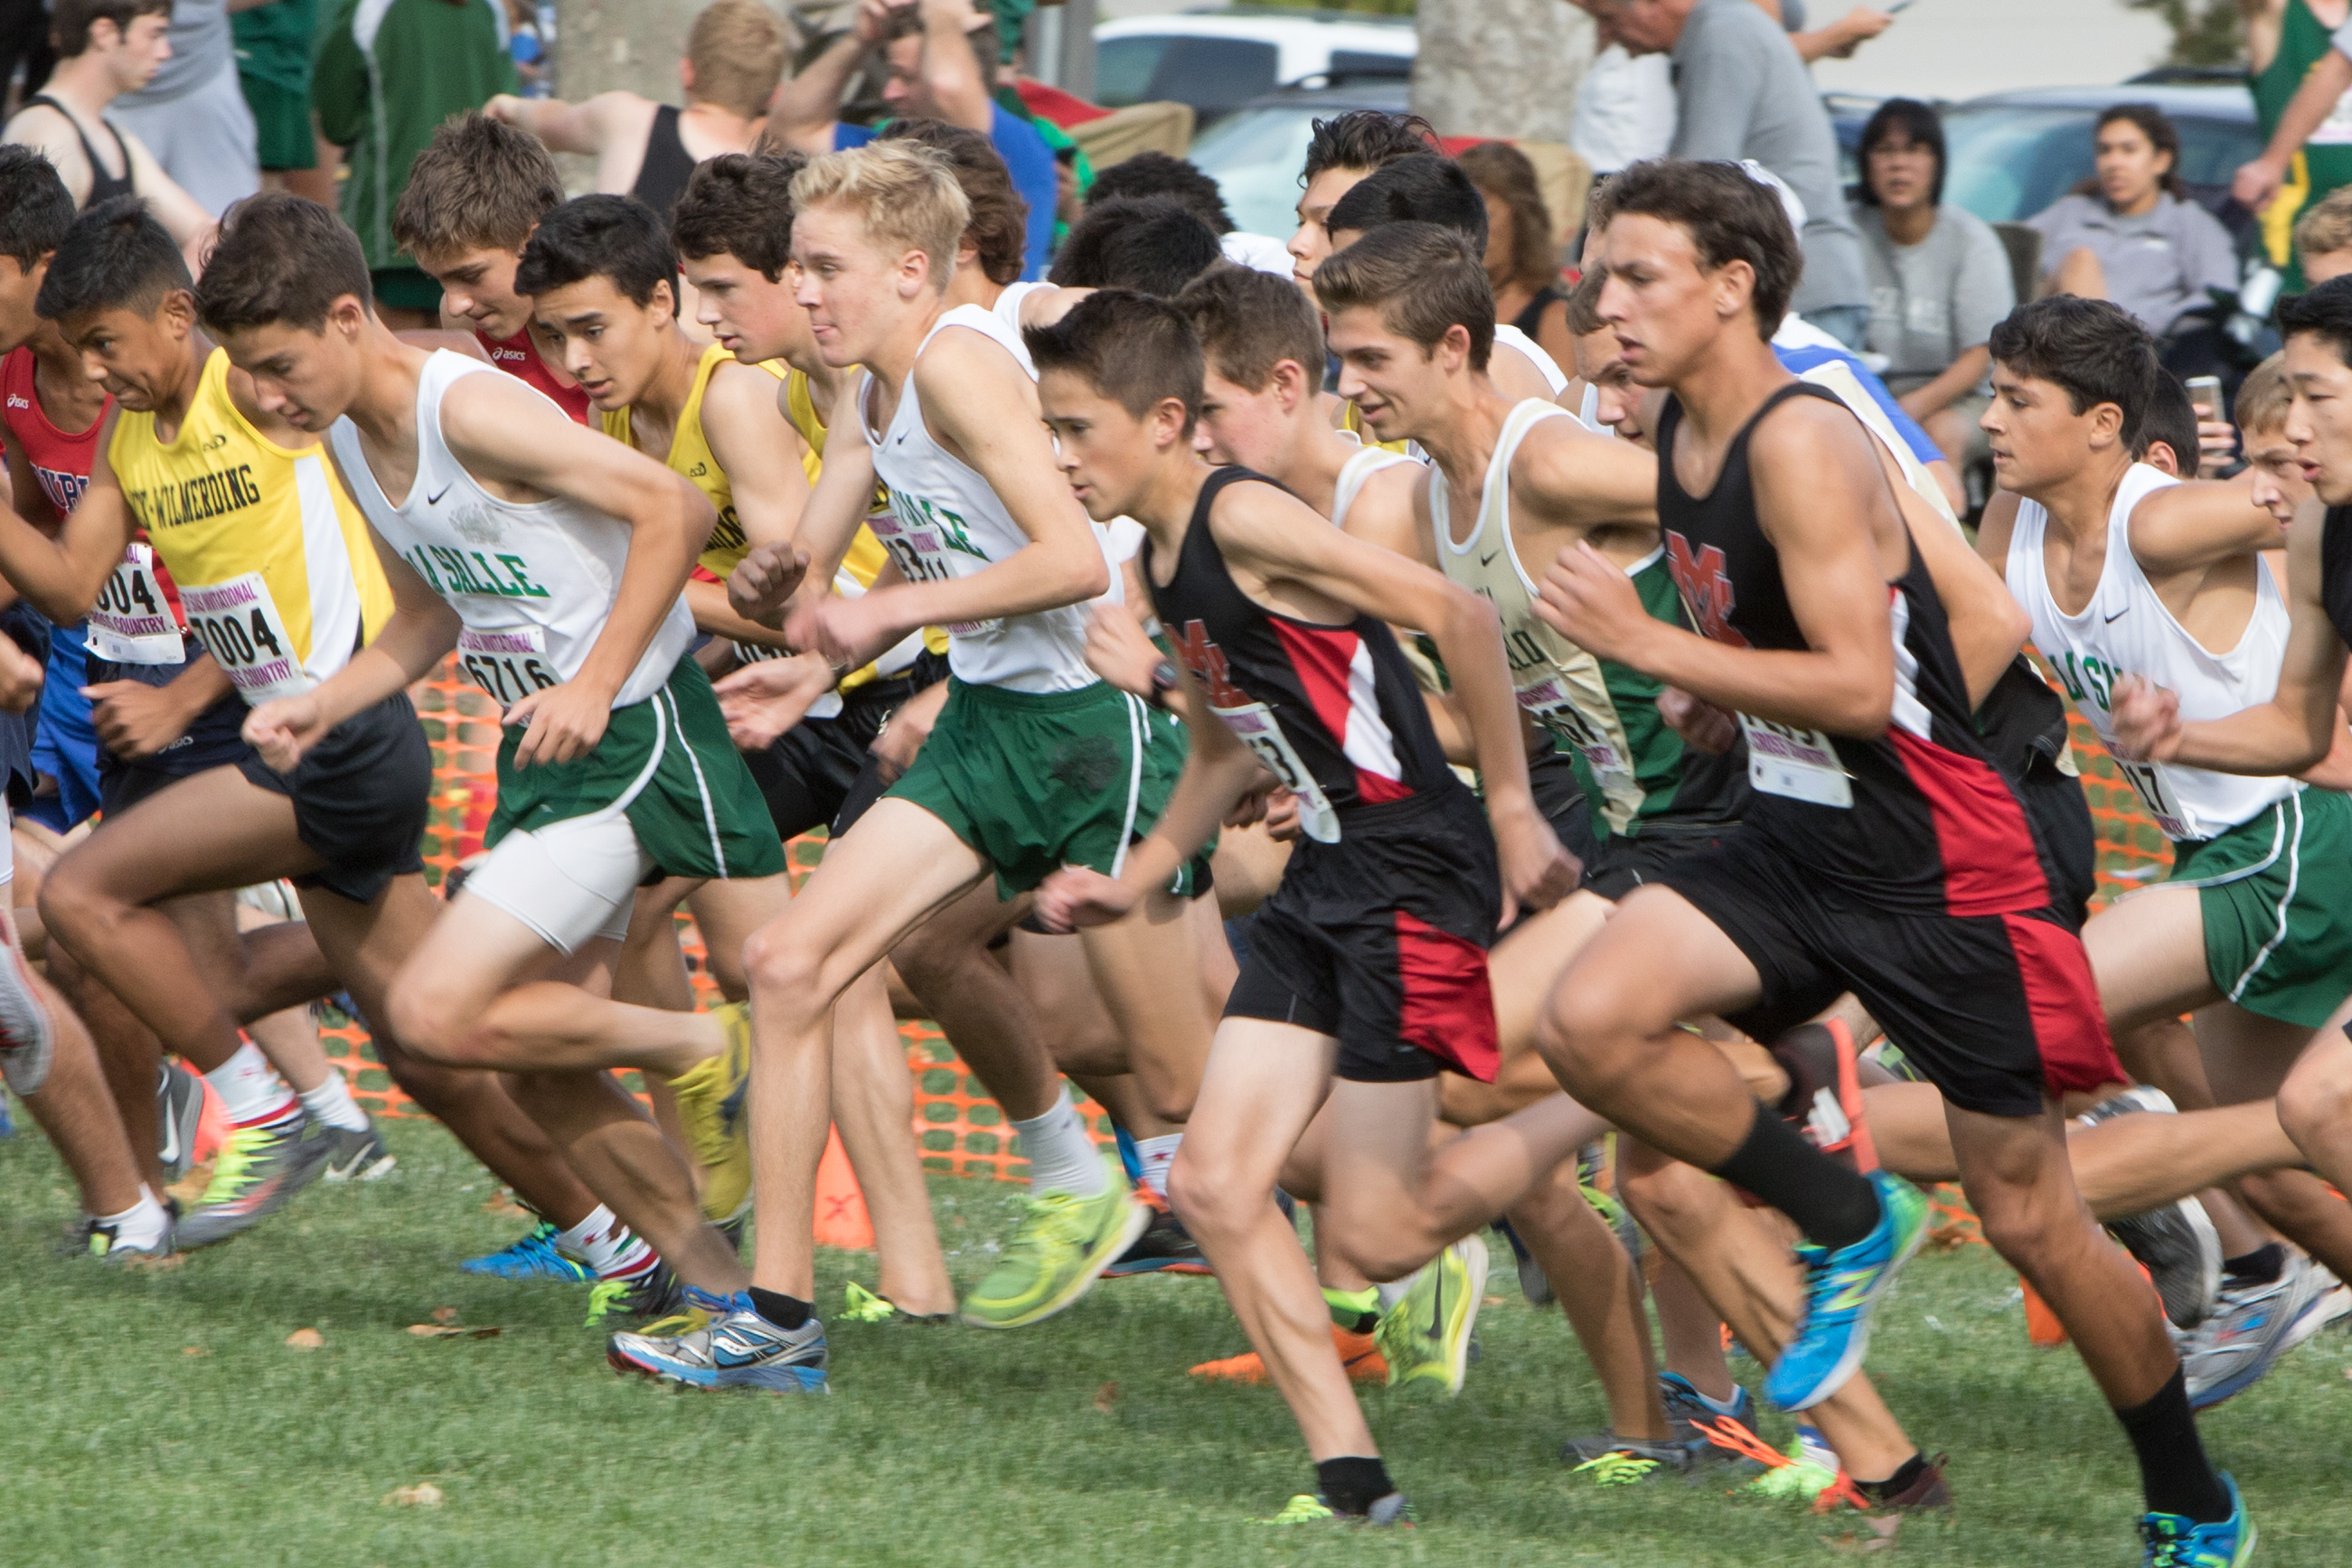 Frosh-Soph Cross Country